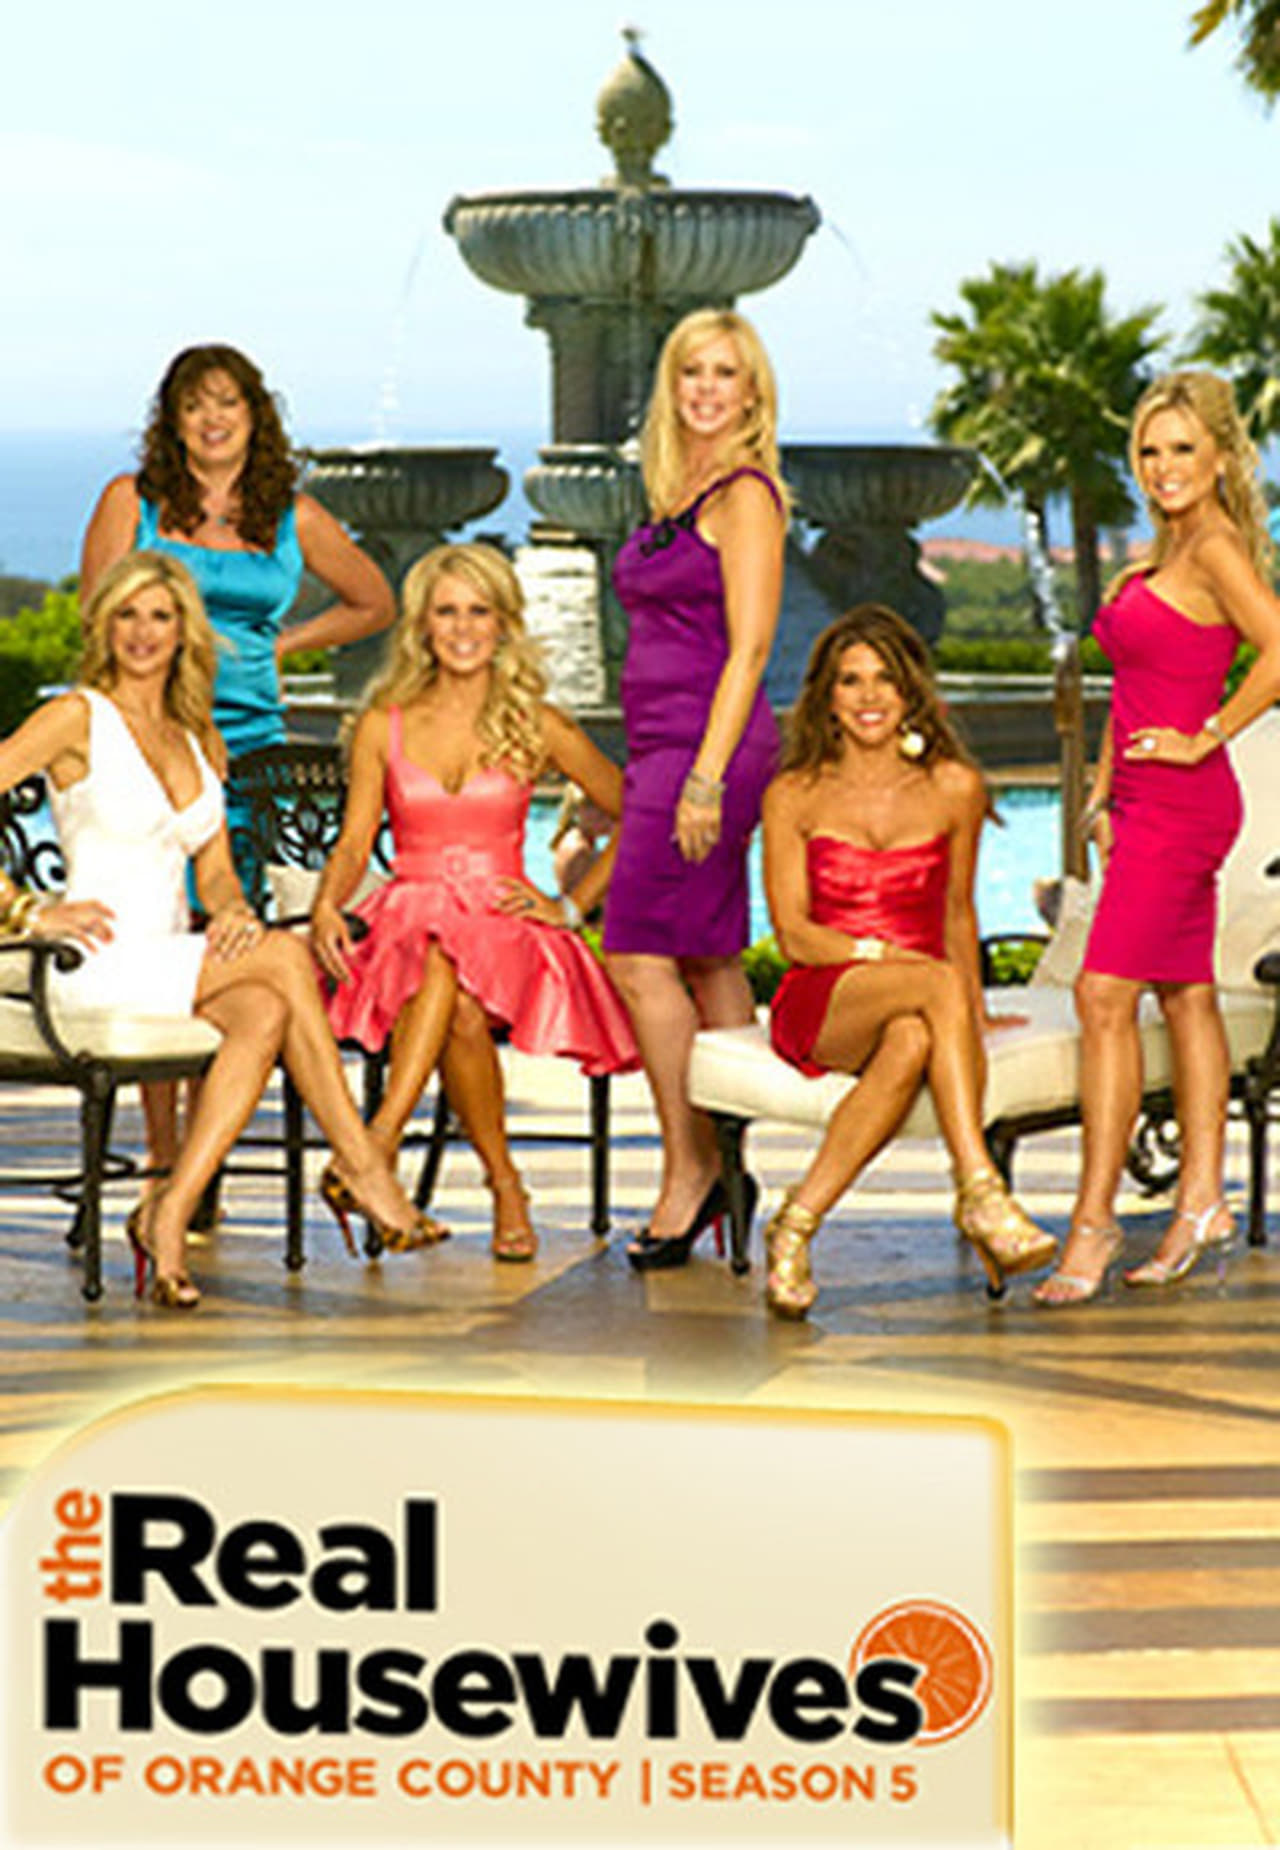 Putlocker The Real Housewives Of Orange County Season 5 (2009)